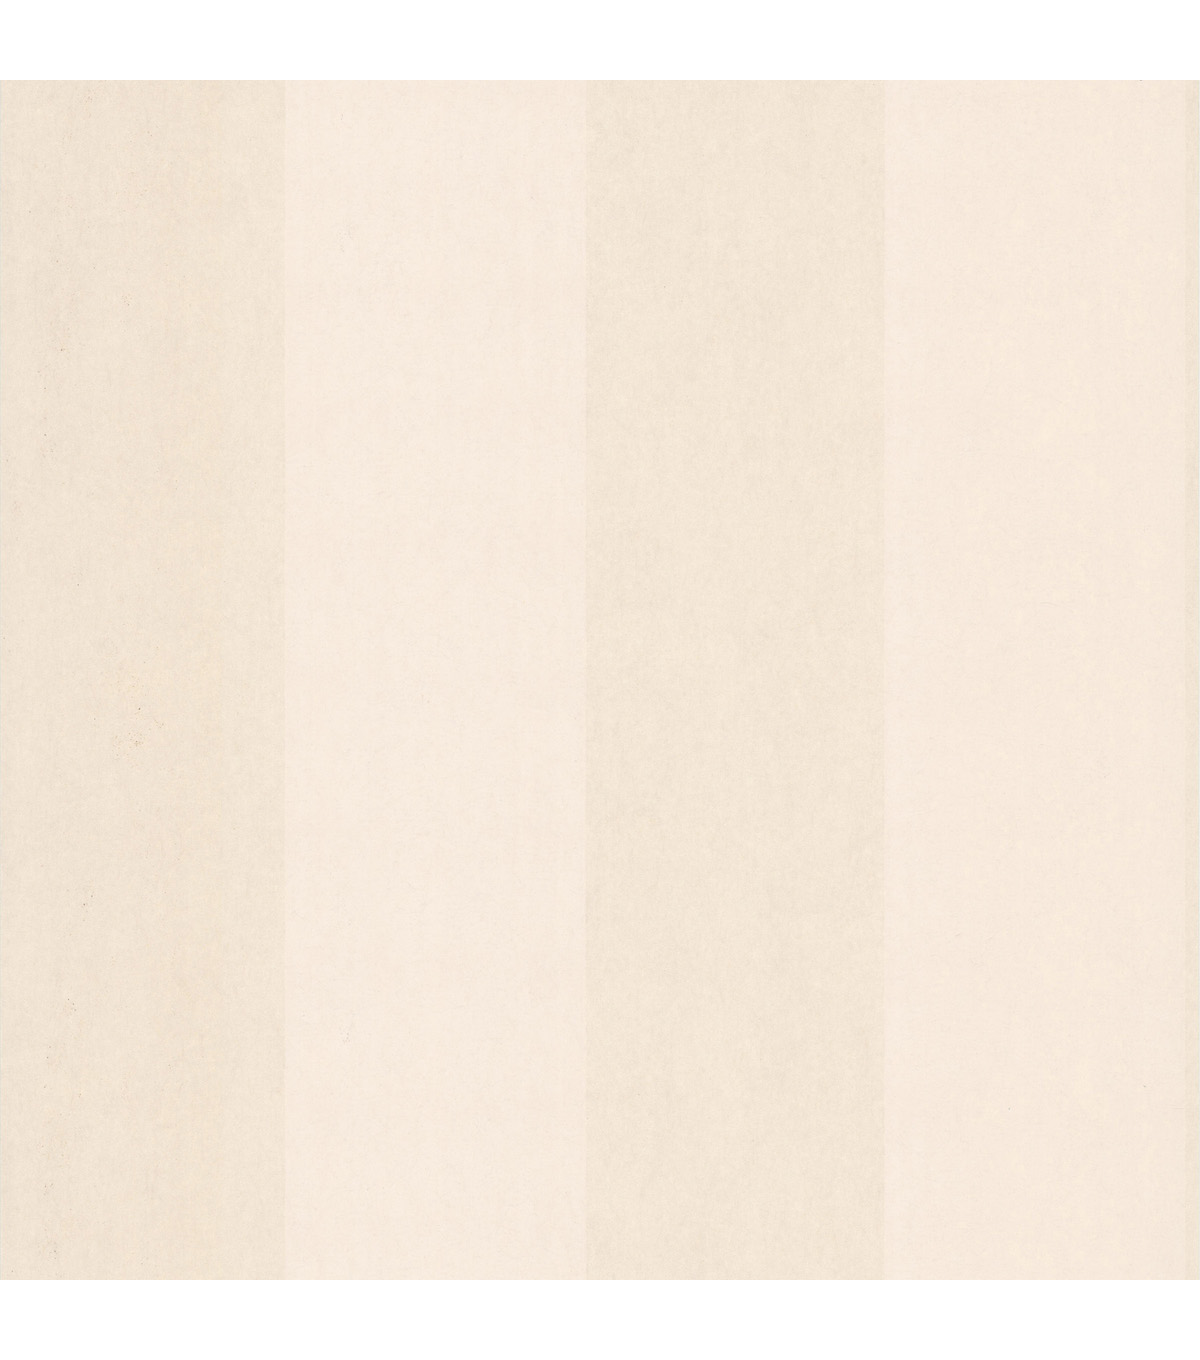 Shimmer Stripe Champagne Stripe Wallpaper Sample